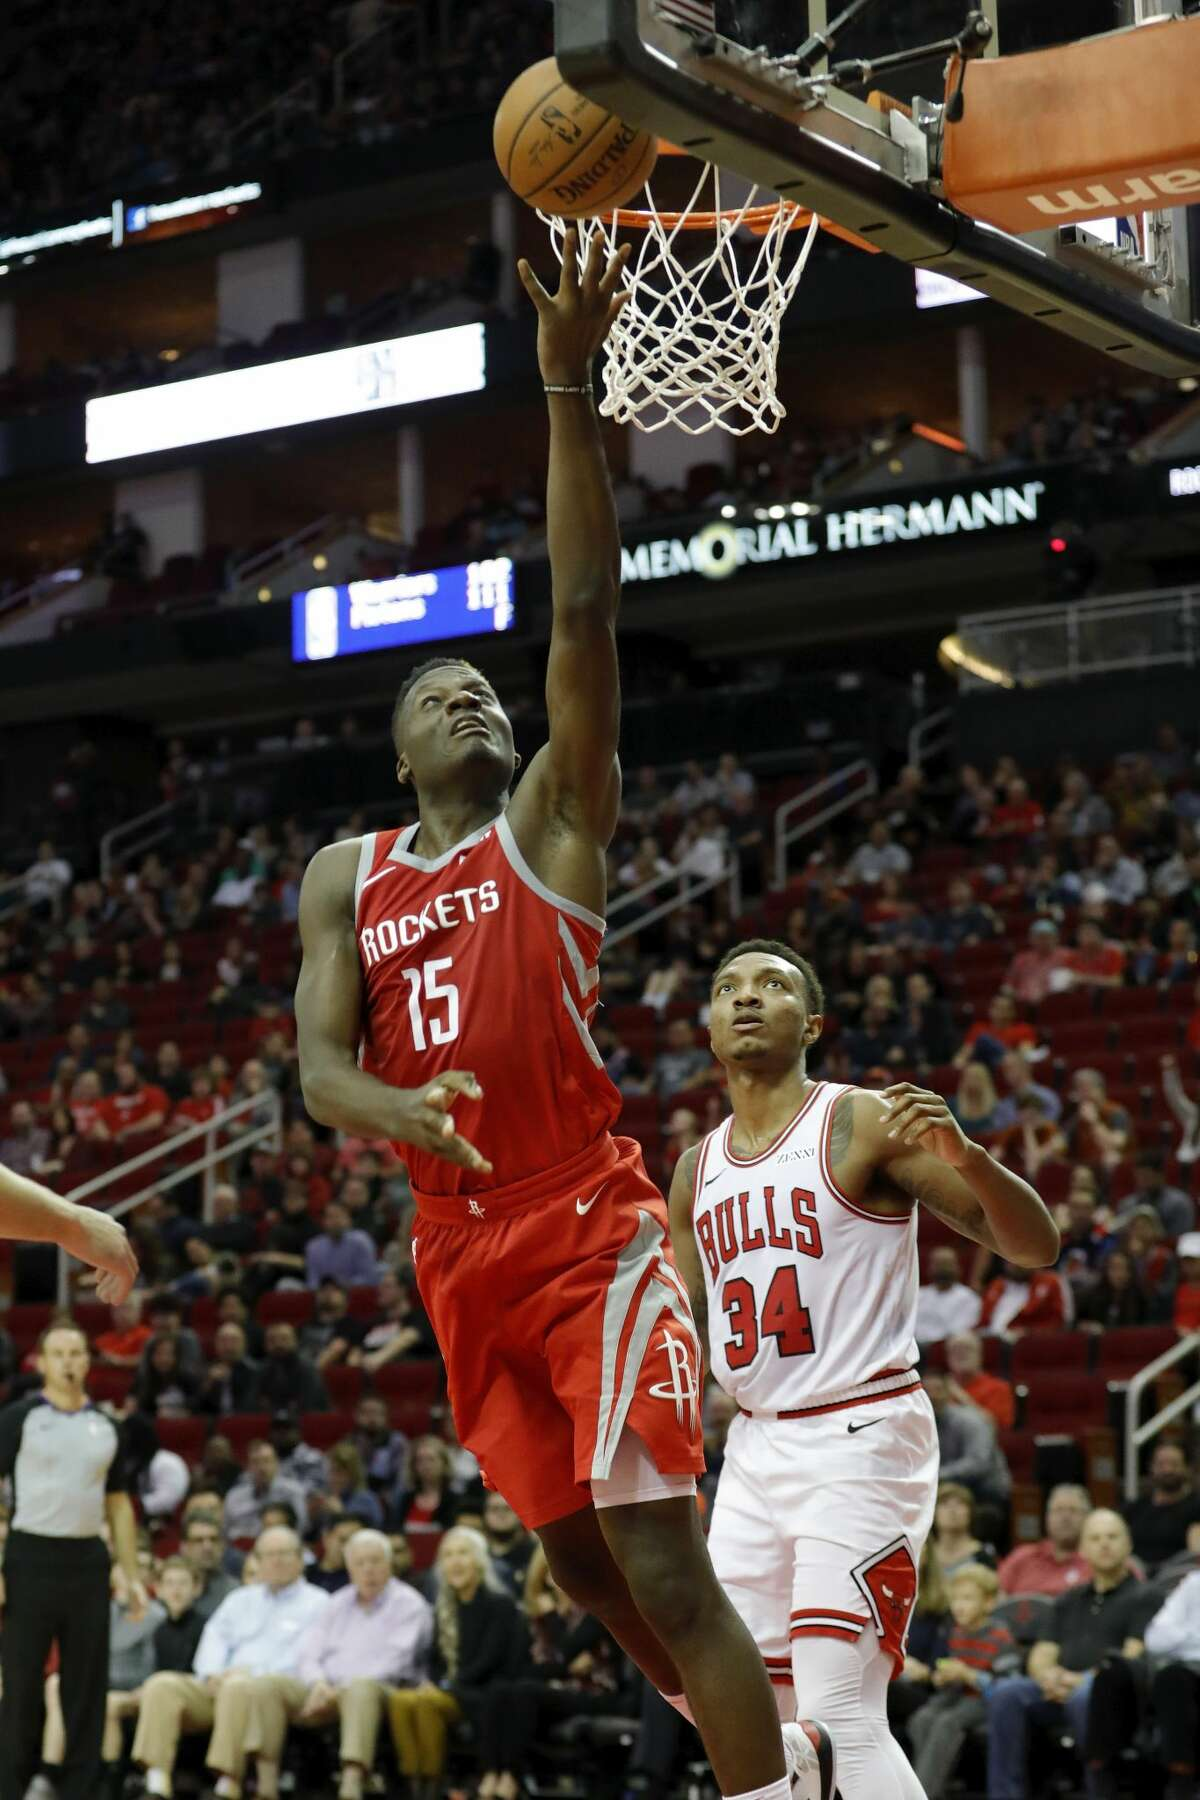 HOUSTON, TX - DECEMBER 01: Clint Capela #15 of the Houston Rockets goes up for a shot defended by Wendell Carter Jr. #34 of the Chicago Bulls in the second half at Toyota Center on December 1, 2018 in Houston, Texas. NOTE TO USER: User expressly acknowledges and agrees that, by downloading and or using this photograph, User is consenting to the terms and conditions of the Getty Images License Agreement. (Photo by Tim Warner/Getty Images)